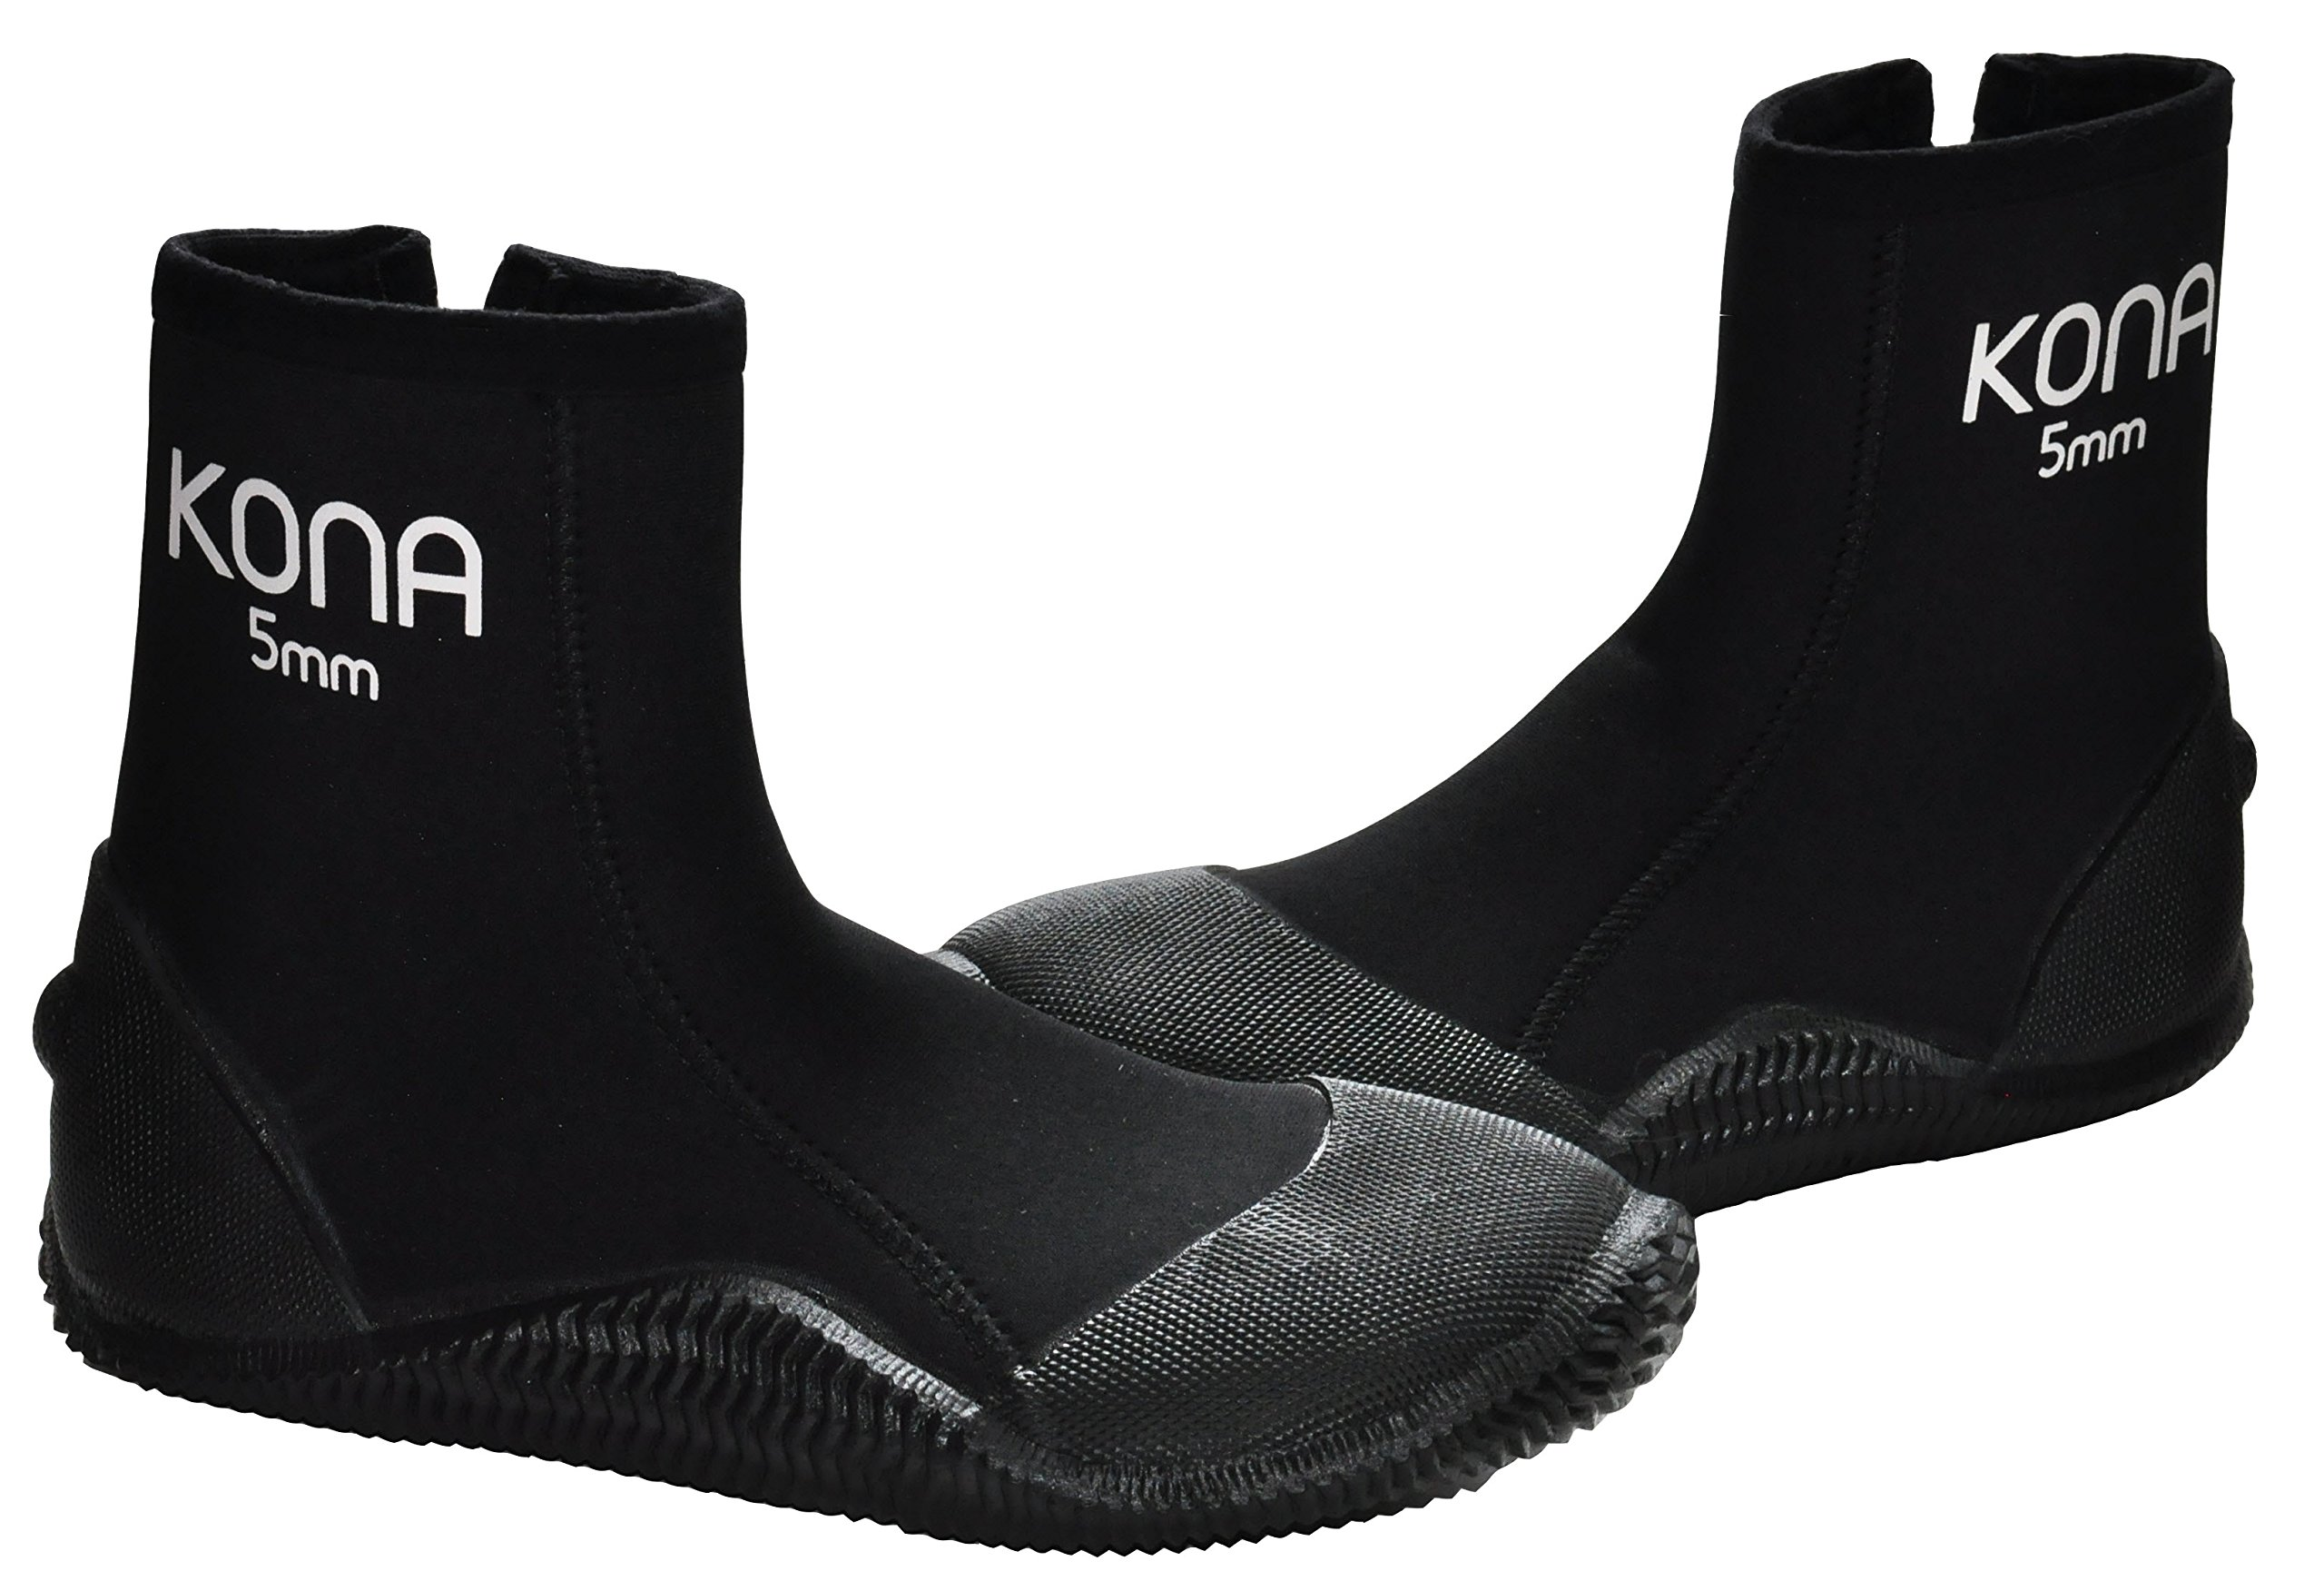 Kona 5mm Premium Double-Lined Neoprene Scuba Diving Boots with Vulcanized Grip Technology (Mens 9 / Womens 10)